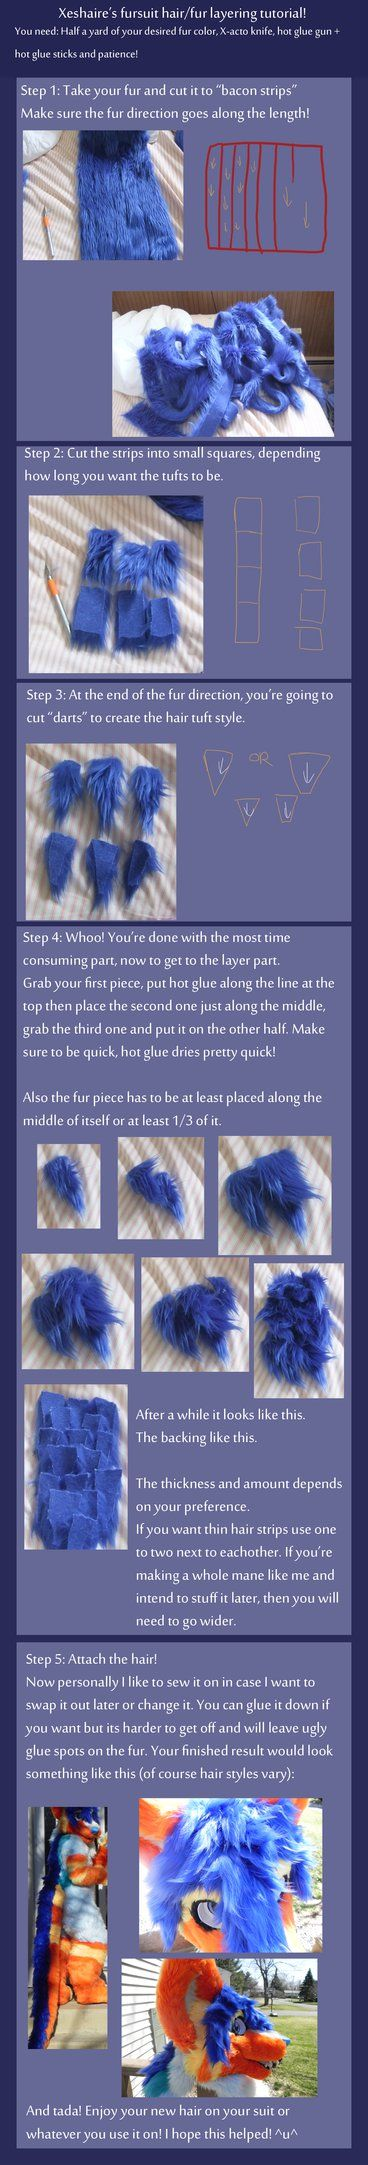 fursuit_hair_or_fur_layering_tutorial_by_xeshaire-d7dwq2q.png (368×2165)